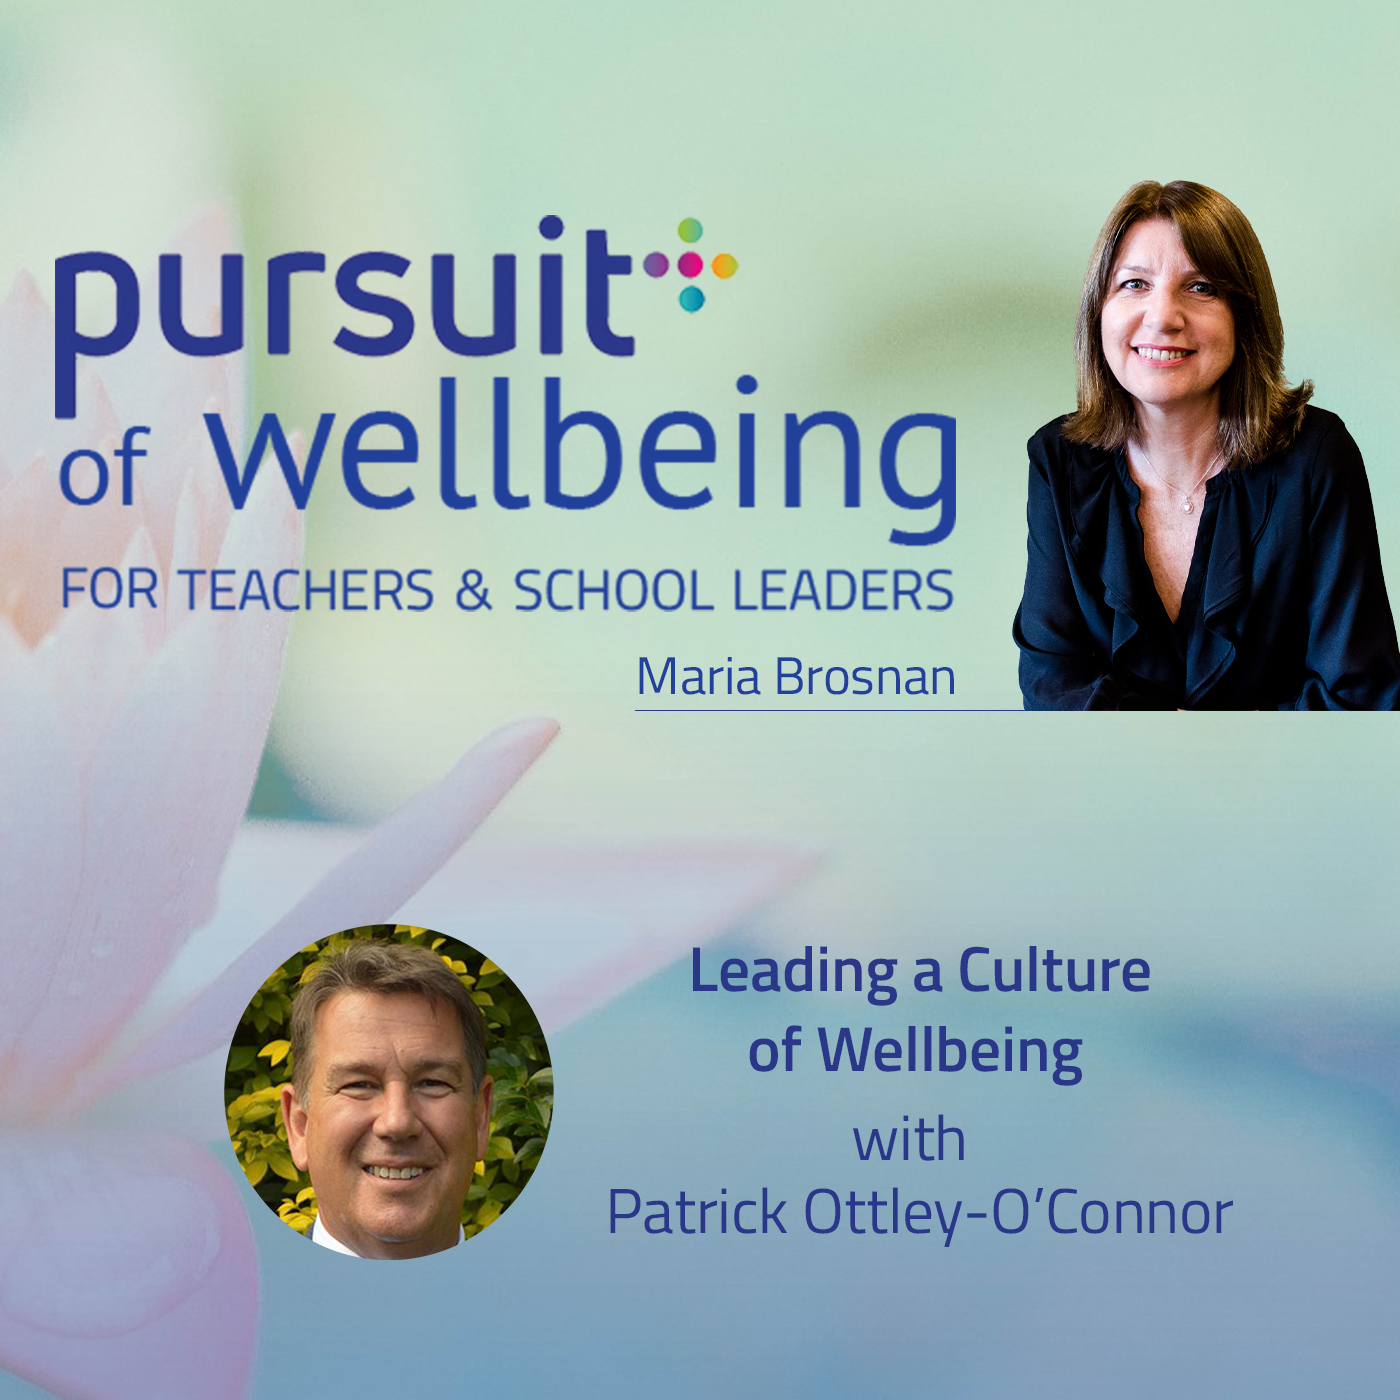 Leading a Culture of Wellbeing with Patrick Ottley O'Connor